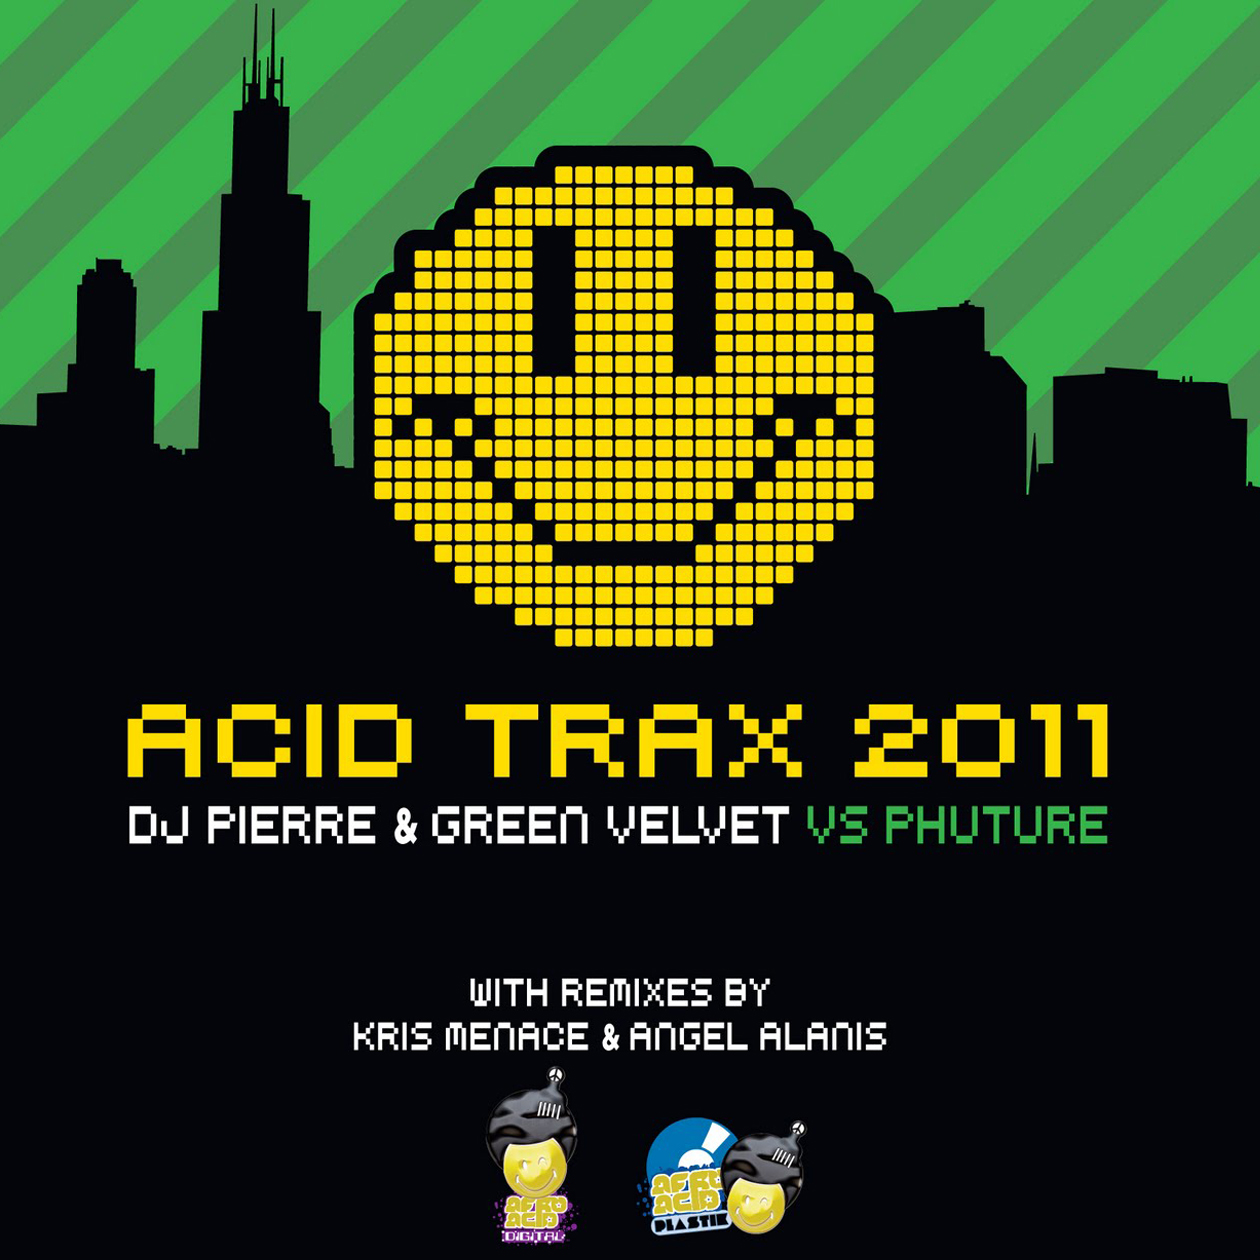 DJ Pierre and Green Velvet Vs Phuture - Acid Trax 2011 EP